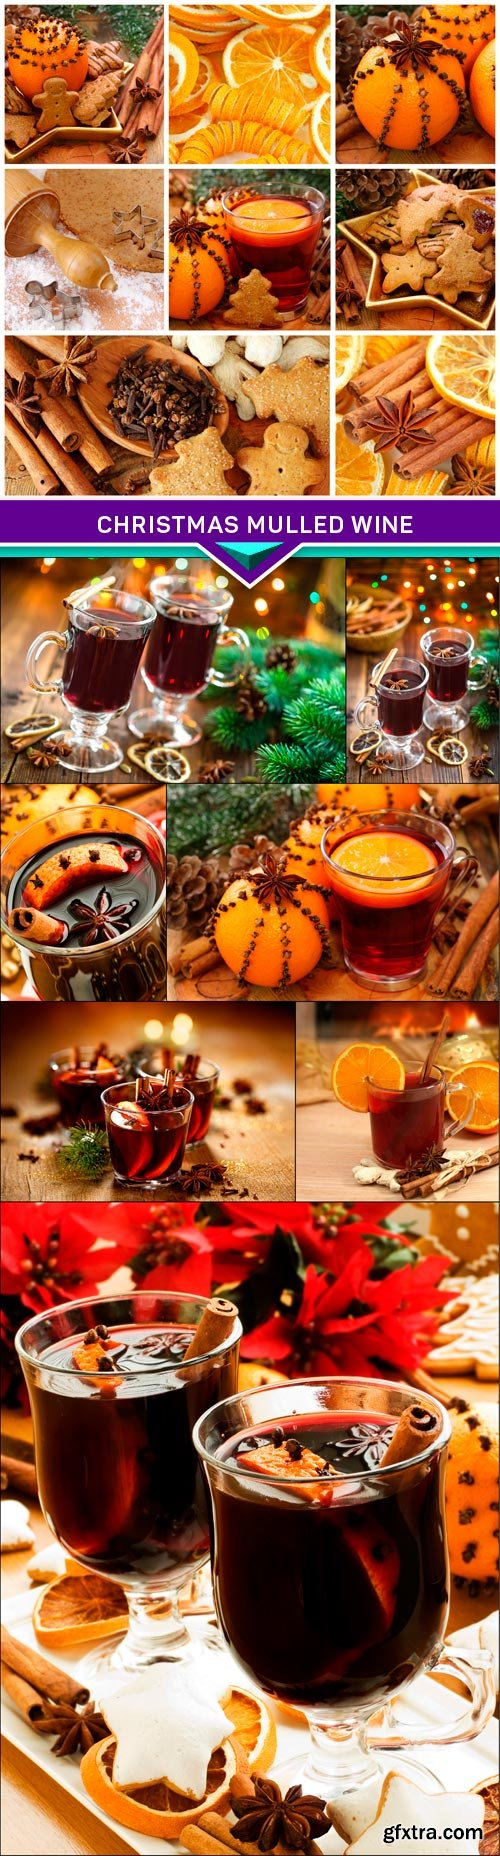 Christmas mulled wine 8x JPEG